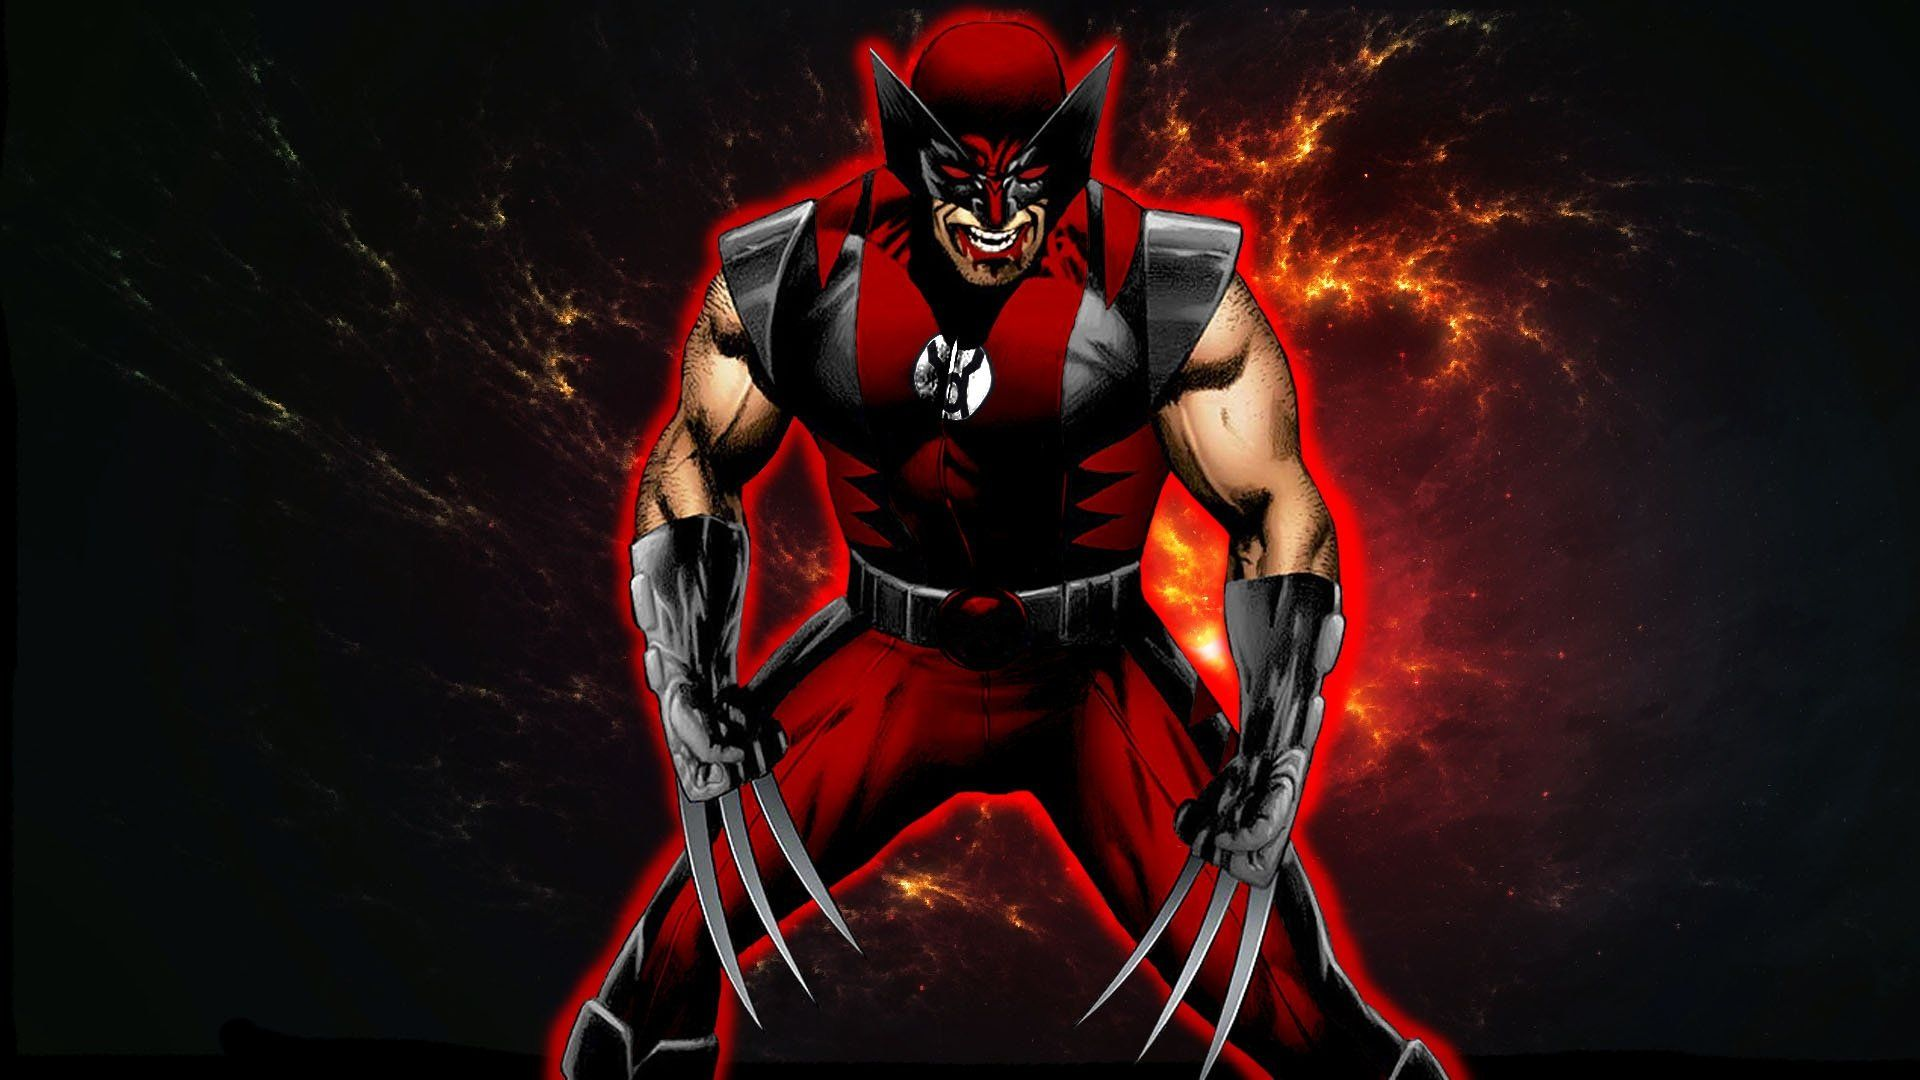 Epic Wallpaperz: Wolverine Wallpapers P Epic Wallpaperz 1920×1080 Wolverine